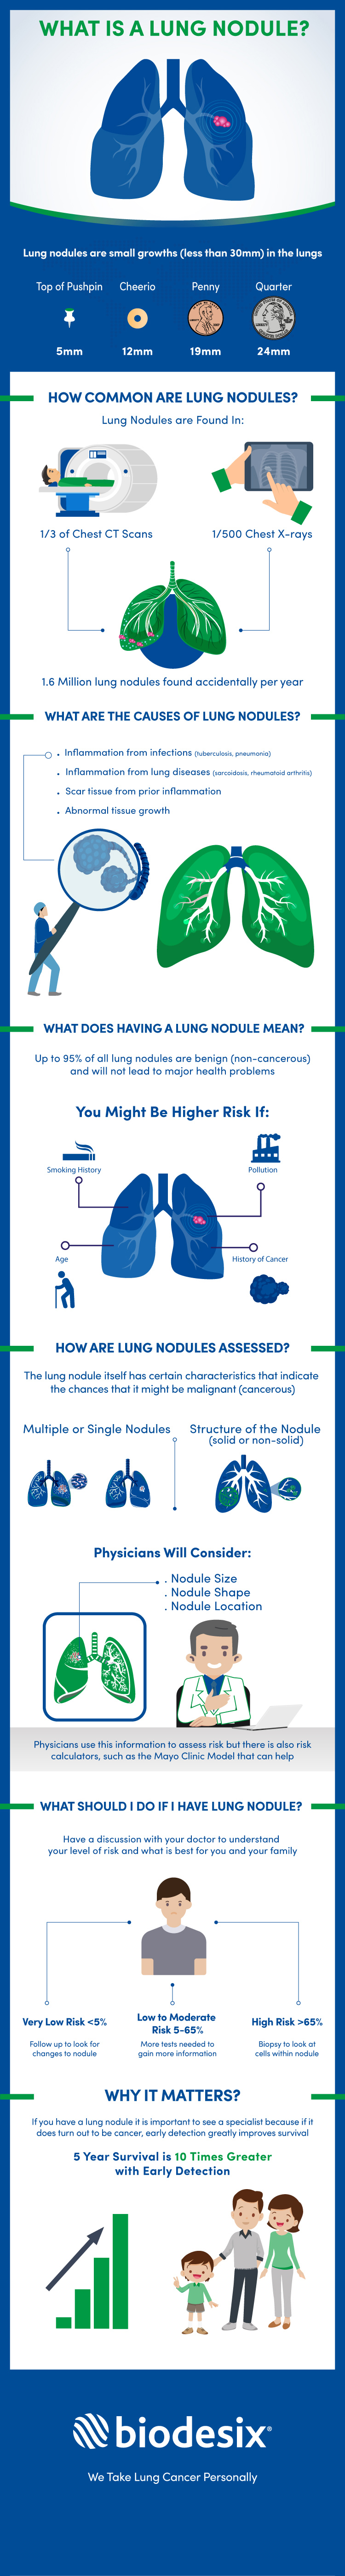 Lung Nodules: Important Facts and Figures - Infographic